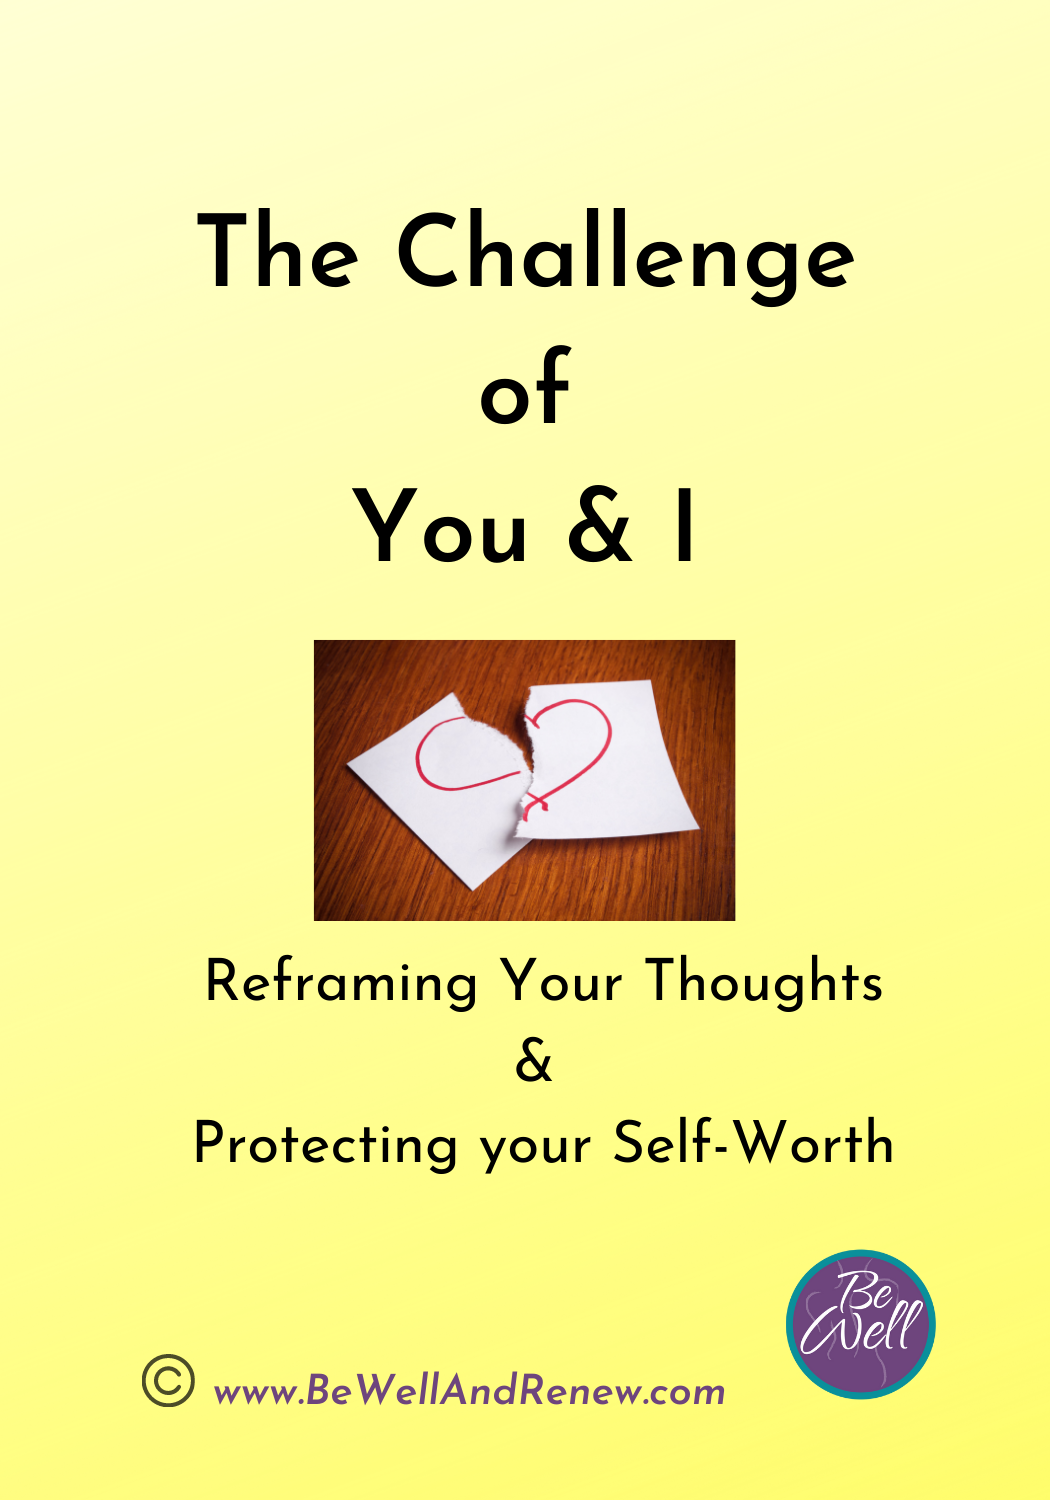 The Challenge Of You & I Card Deck